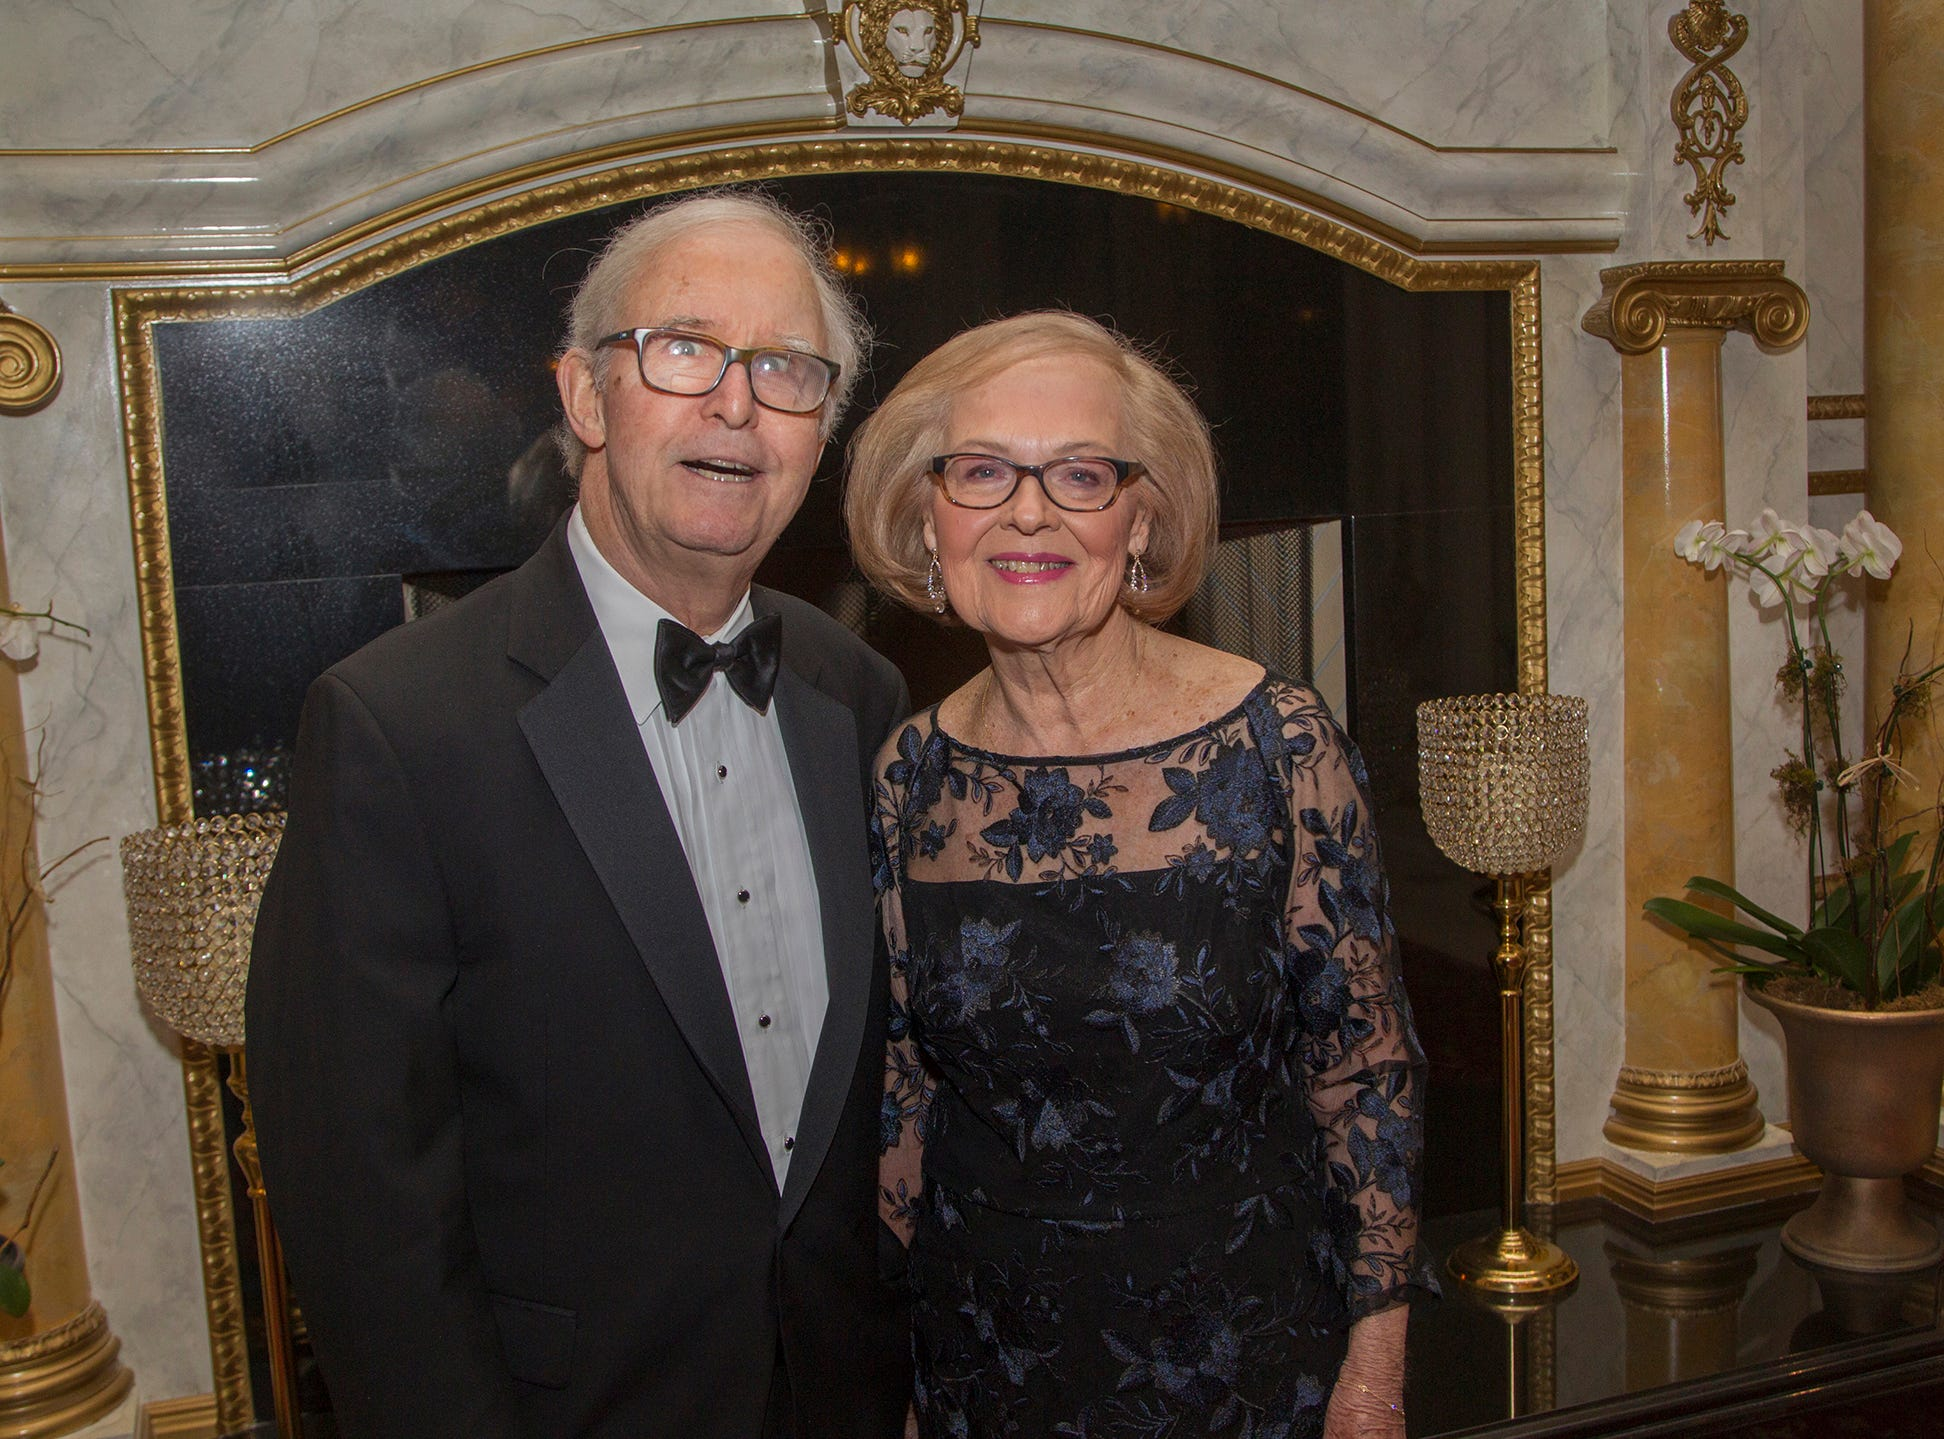 John and Charlotte Byrne. The 72nd Annual Valley Ball gala at The Legacy Castle in Pompton Plains. 11/16/2018